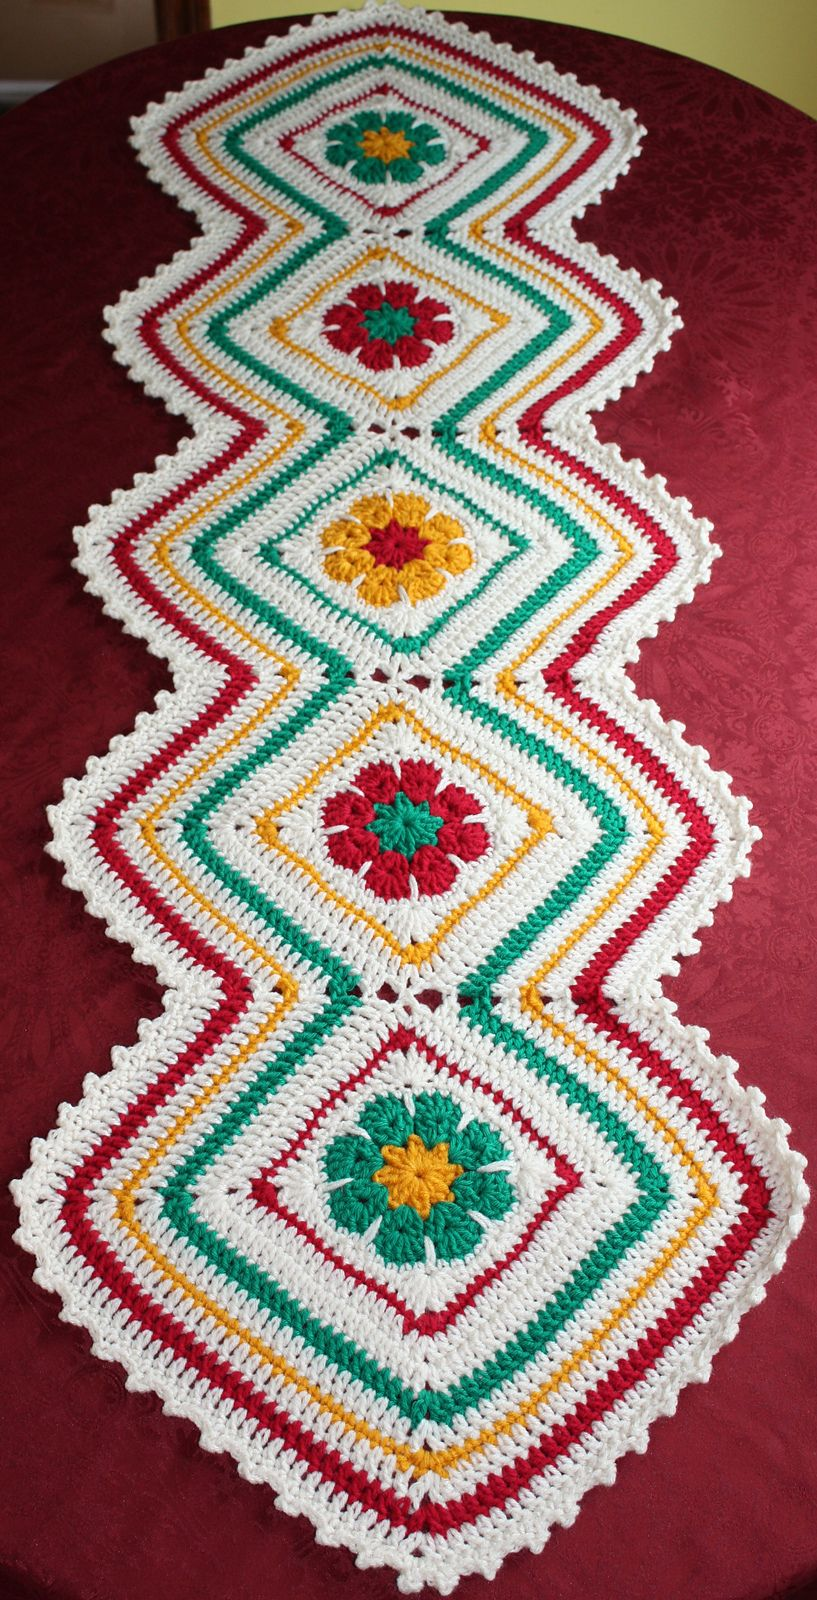 Joyful Flowers Table Runner By Maria Bittner - Free Crochet Pattern ...